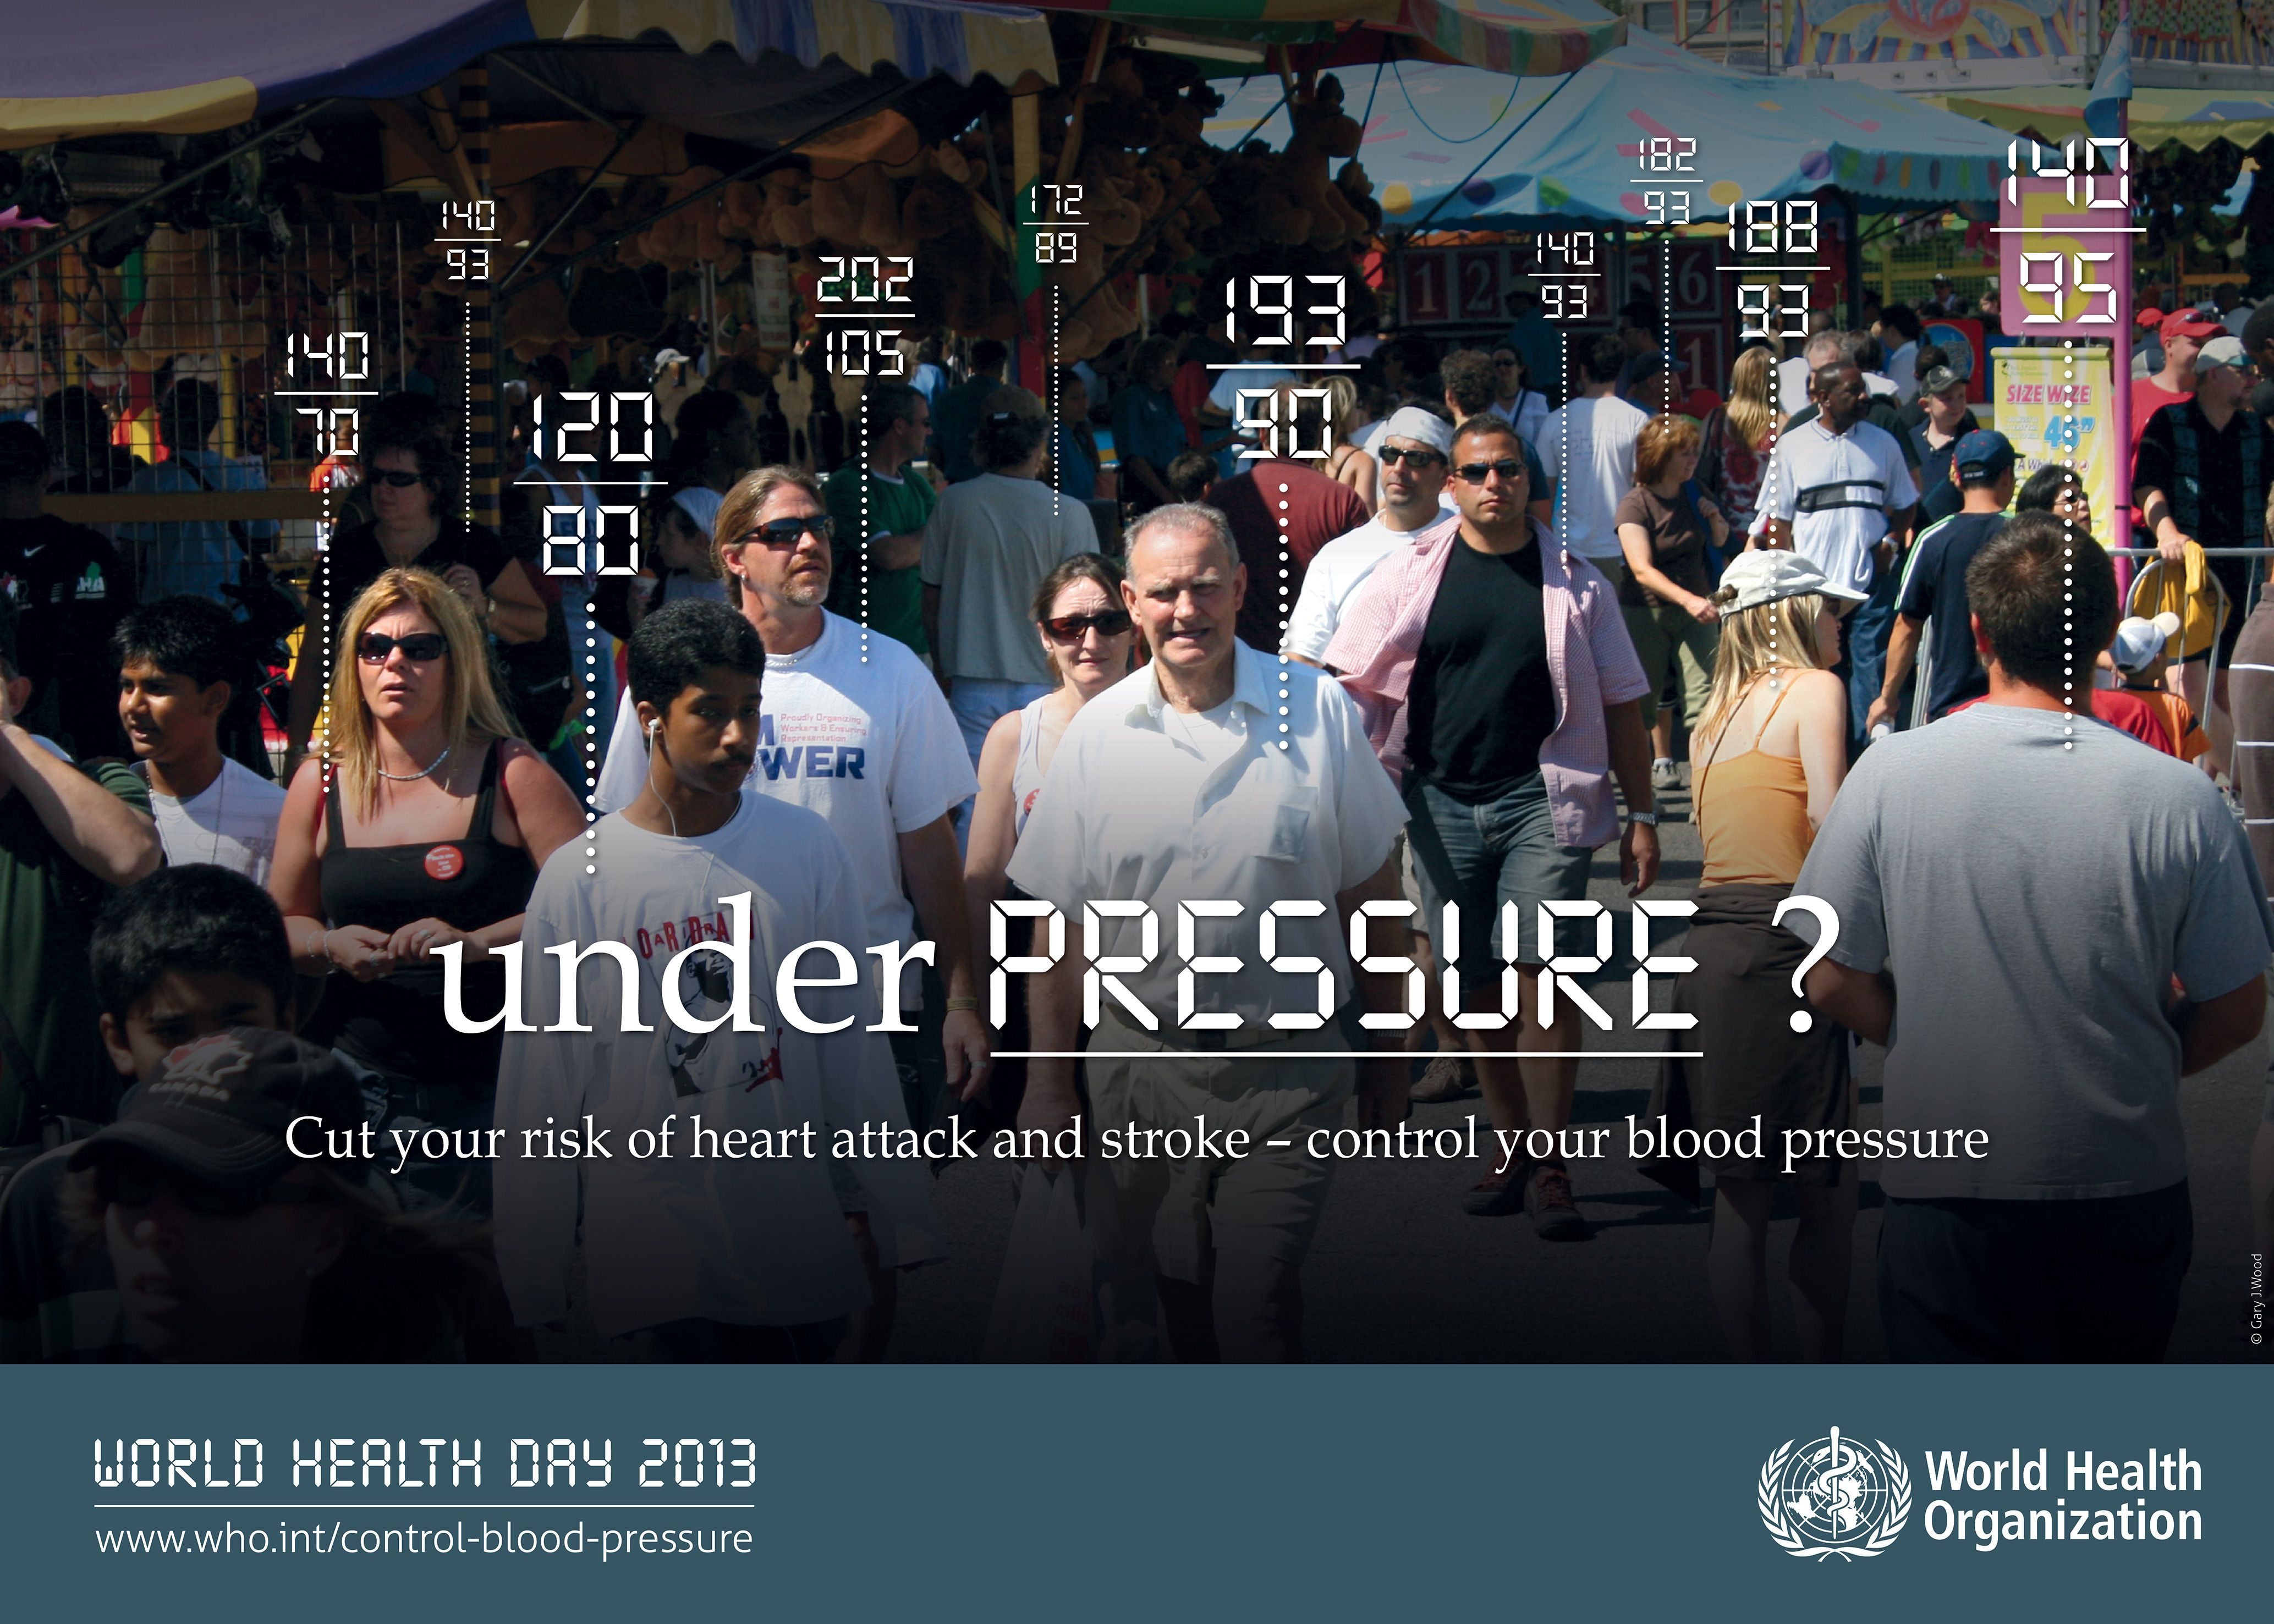 Europa : Cut your risk of heart attack and stroke - Control your blood blood pressure - UNDER PRESSURE ?  WORLD HEALTH DAY 2013   http://www.WHO.int/control-blood-pressure